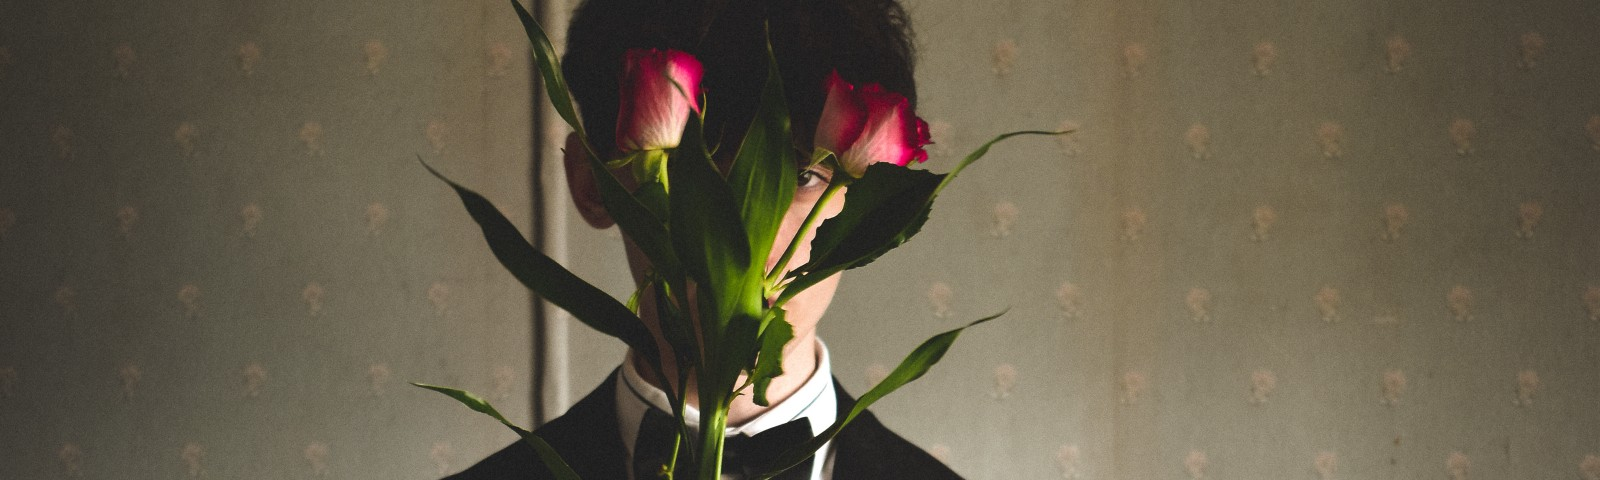 A man in a suit stands holding flowers up to his face.